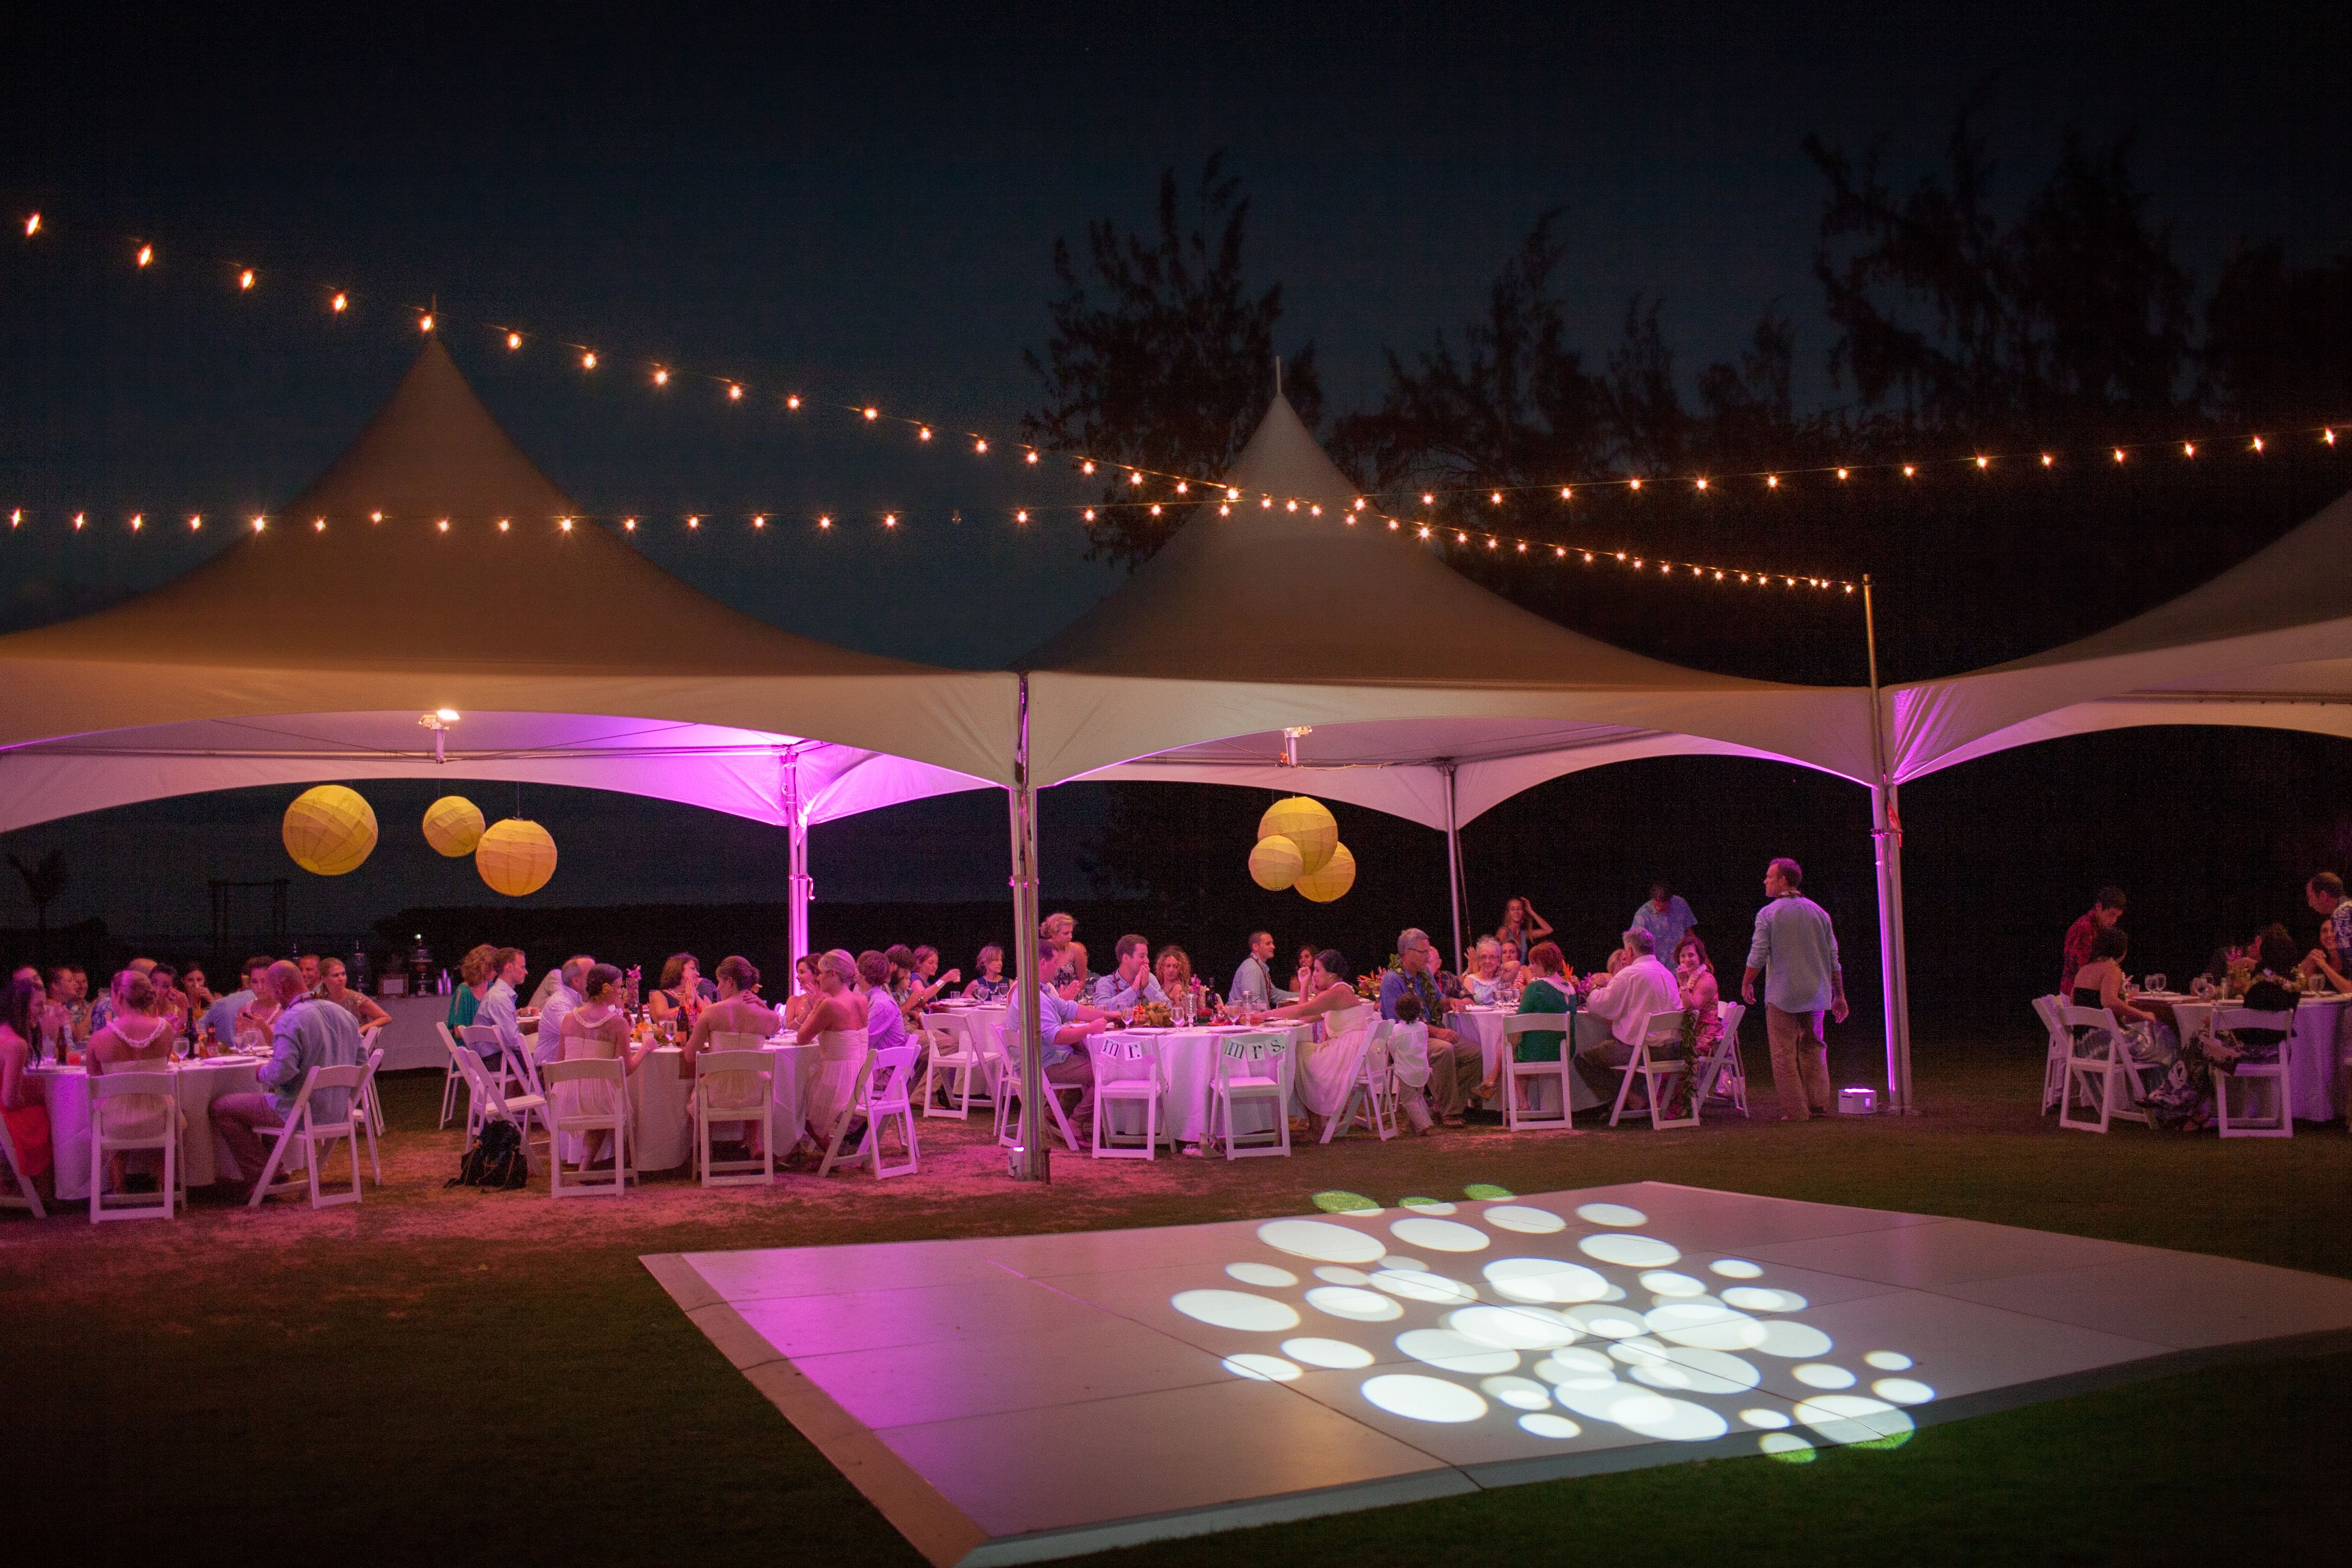 Two 10x20 White Top Tents With Cafe Lights Over 16x16